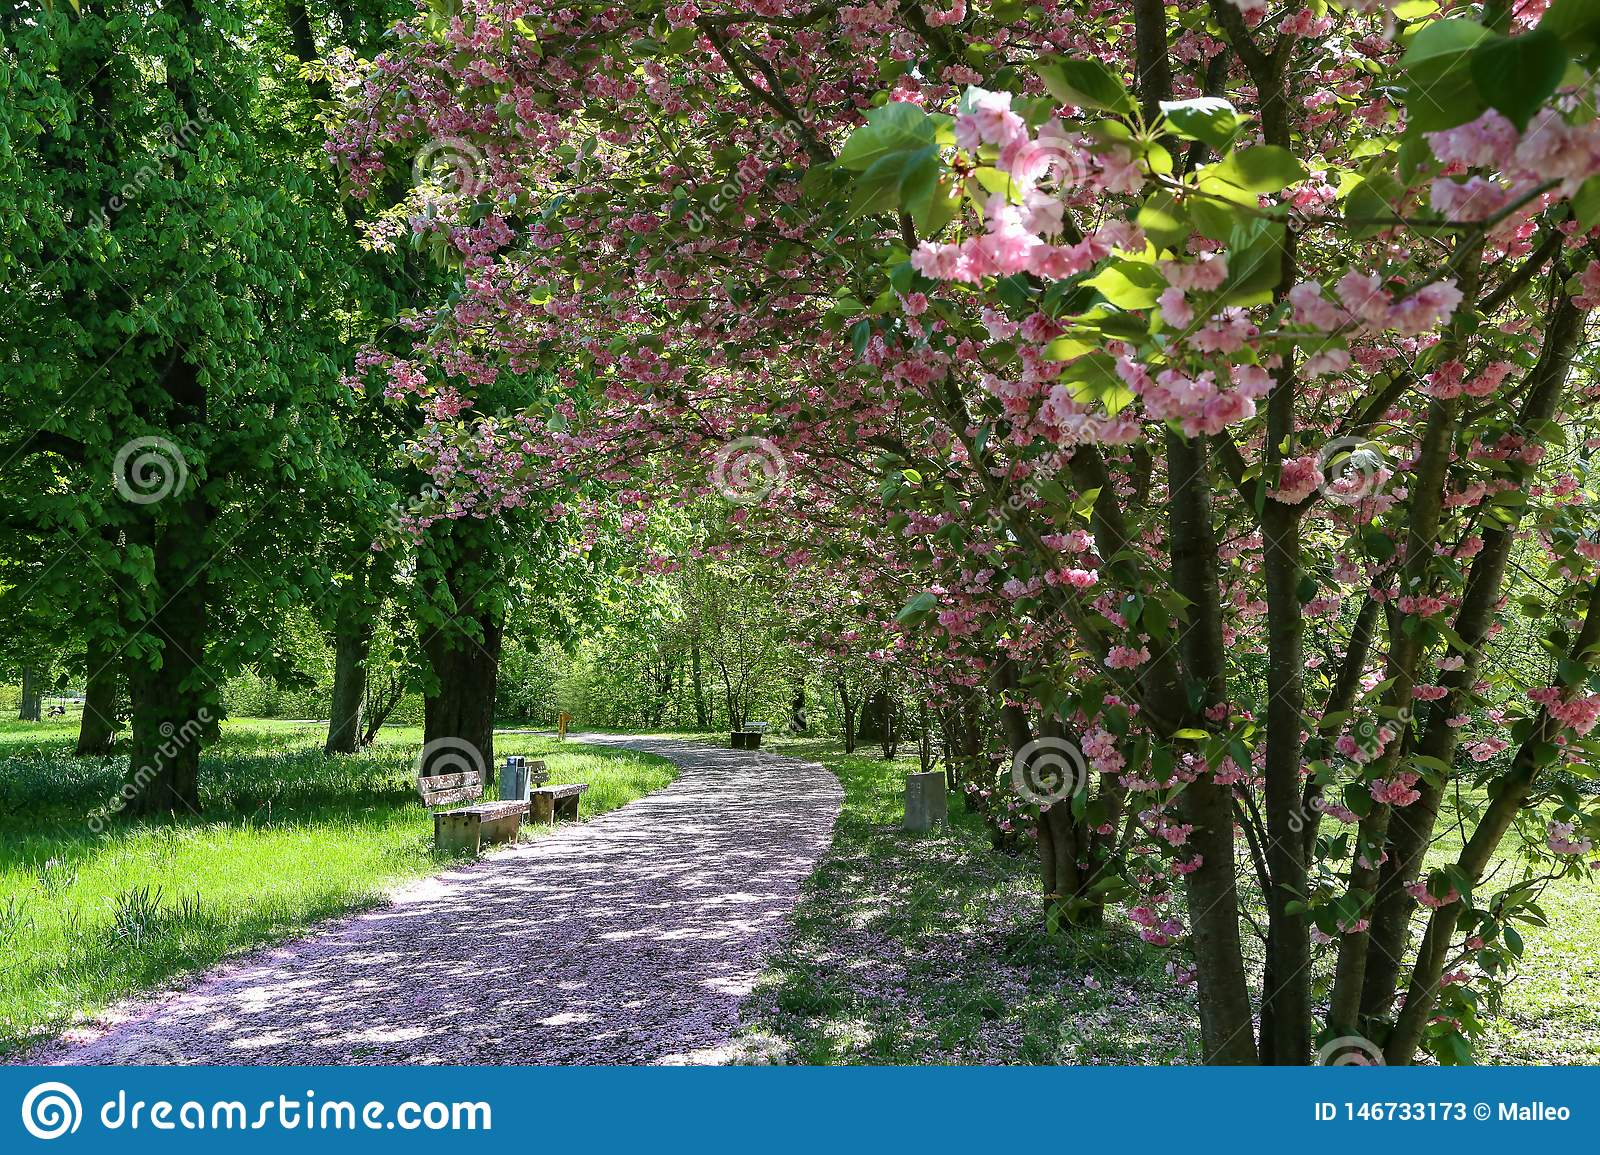 Blooming Cherry Alley in the city park